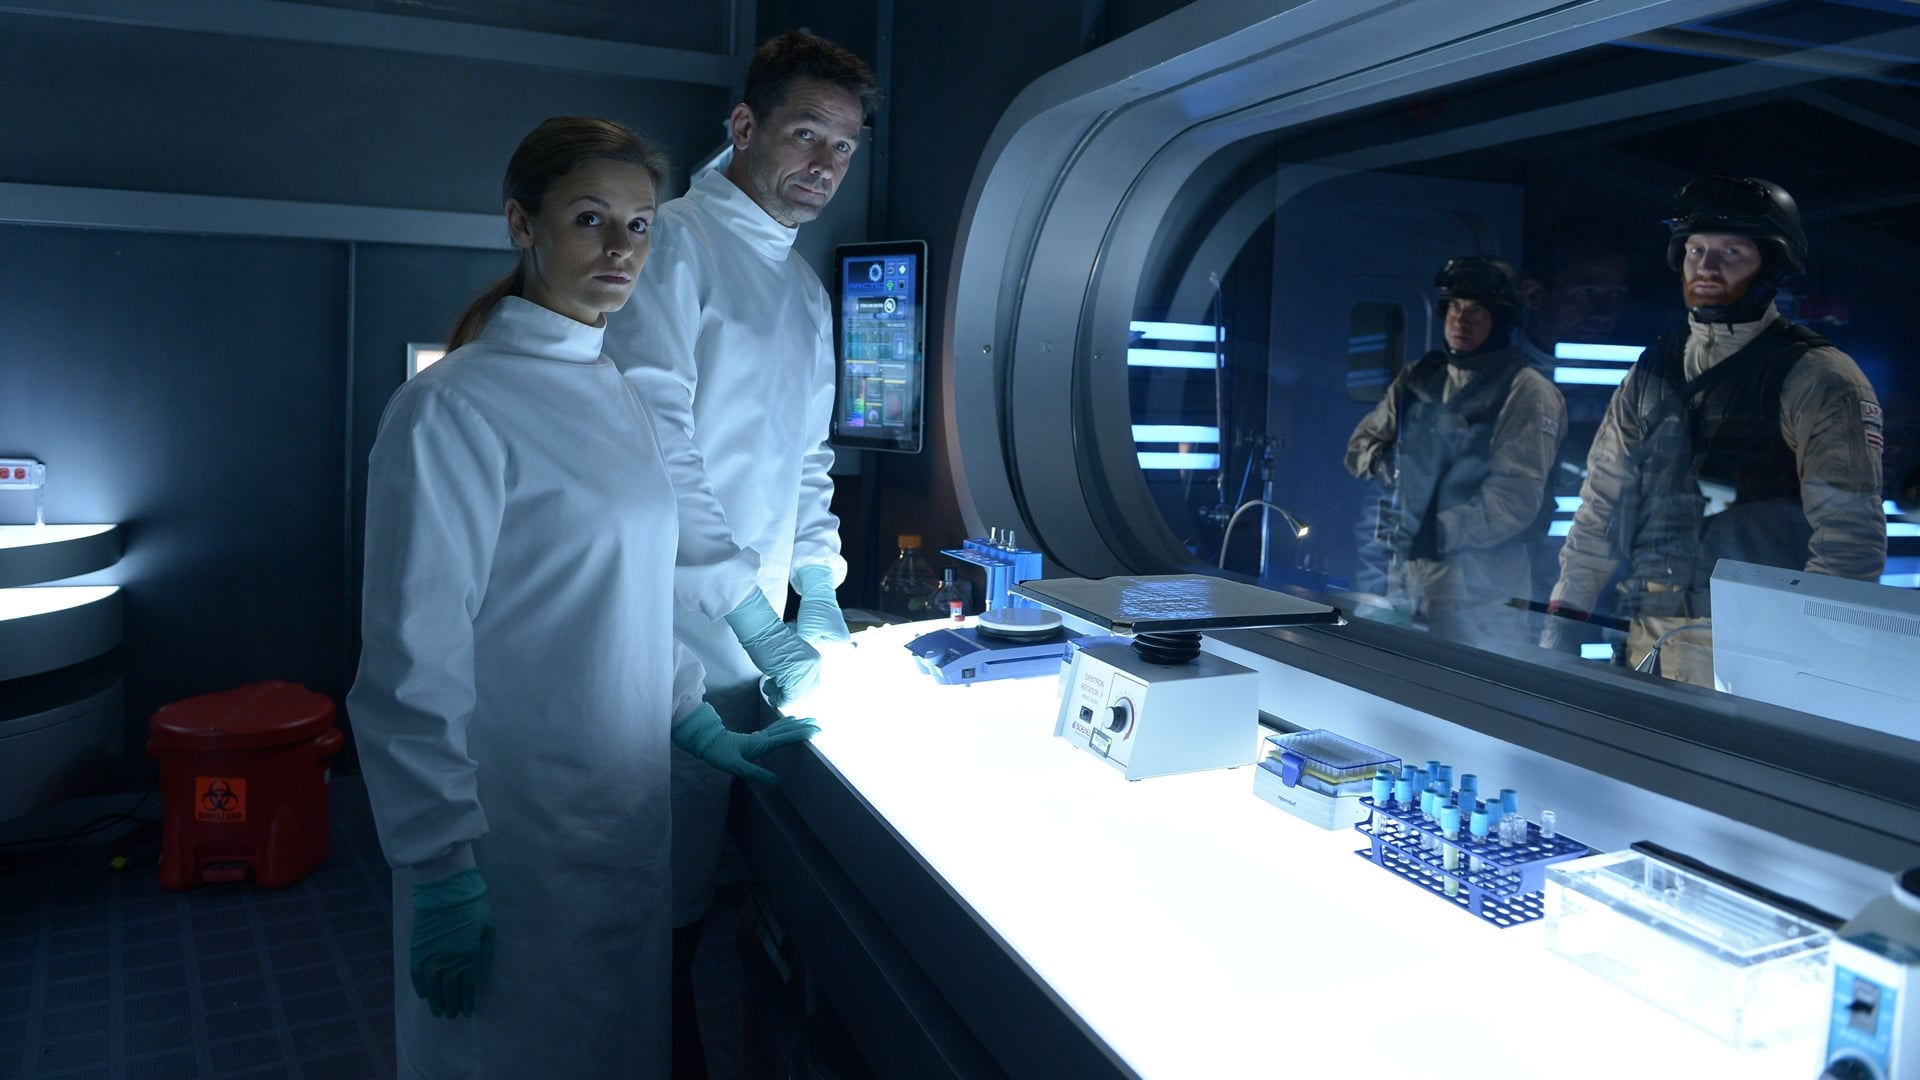 Helix The White Room Full Episode